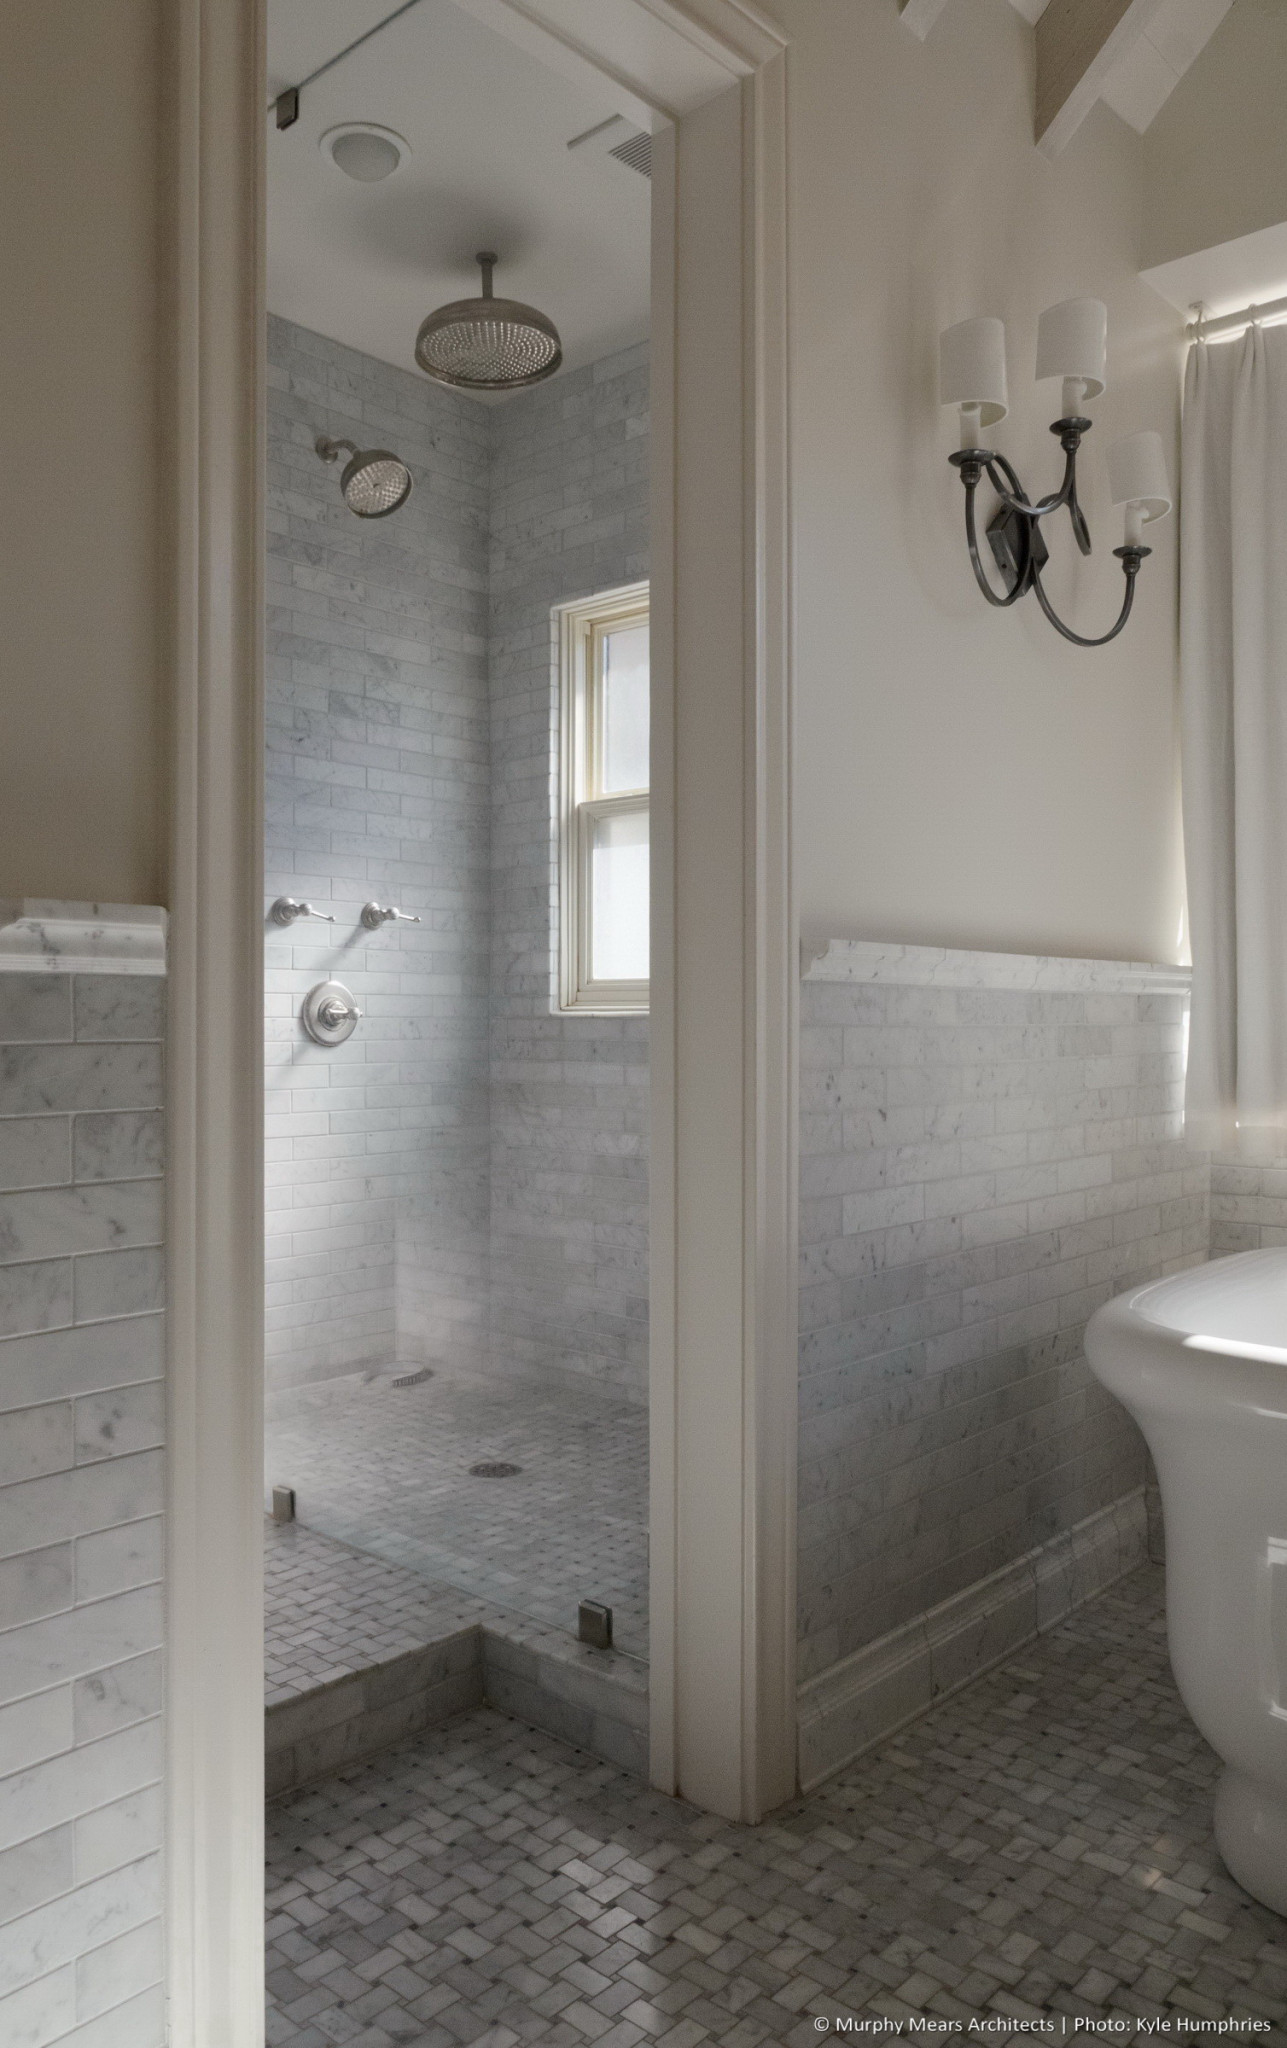 Pemberton Residence - Master shower with soft natural light filtered through a frosted glass south-facing window.